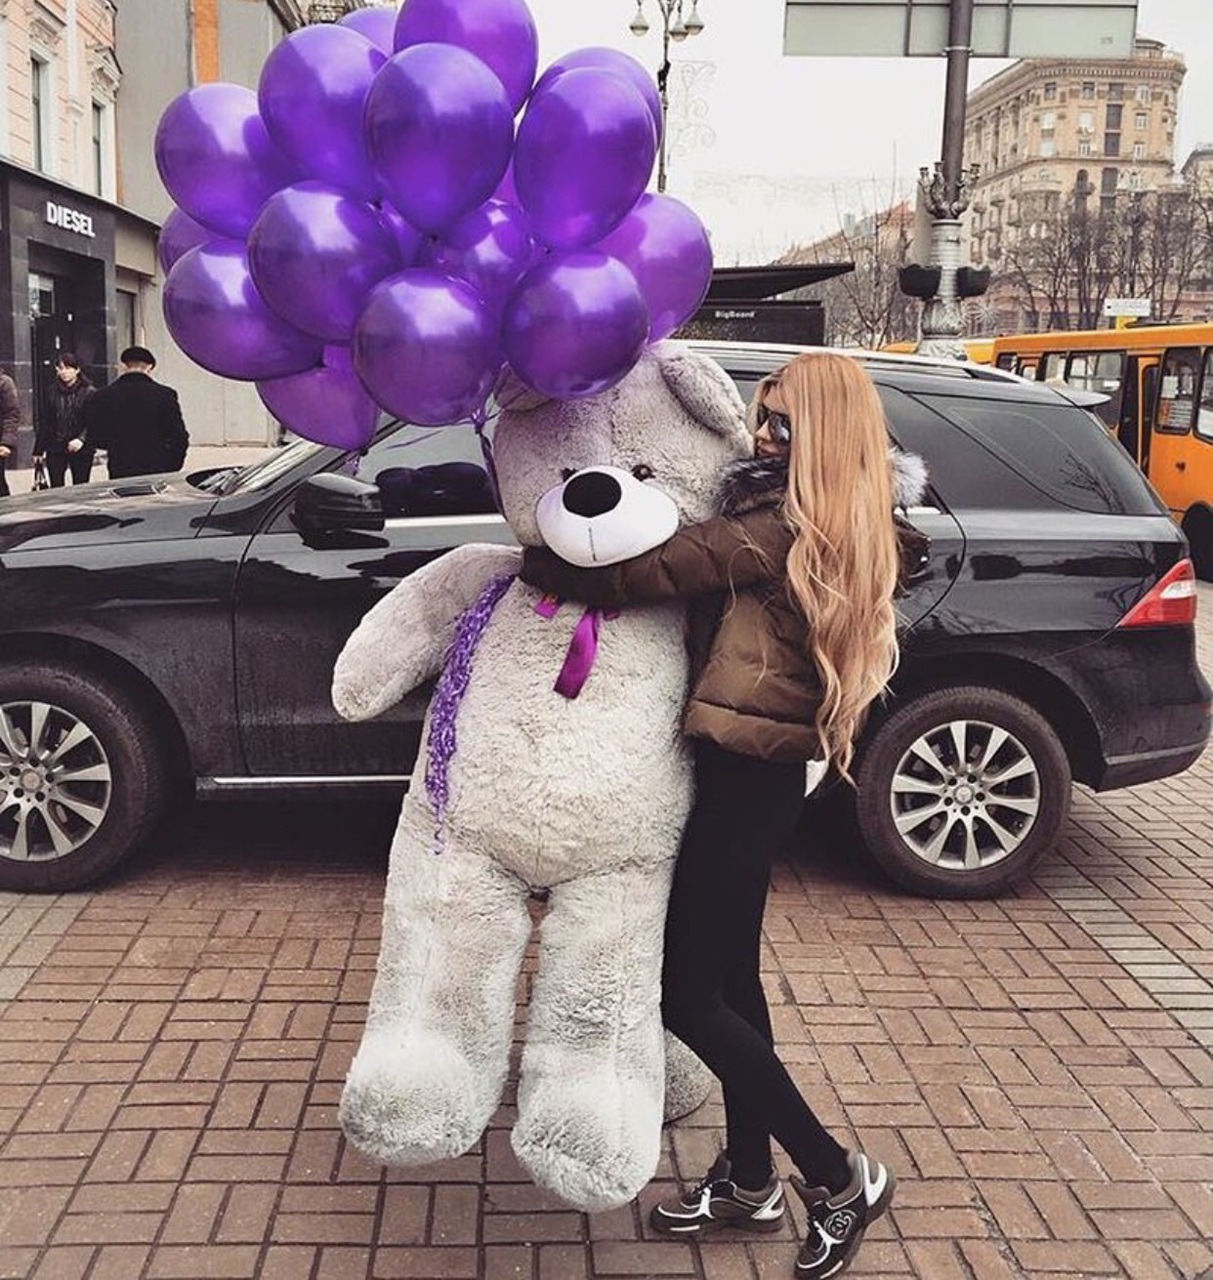 accessories, adorable, ball, balloons, bear